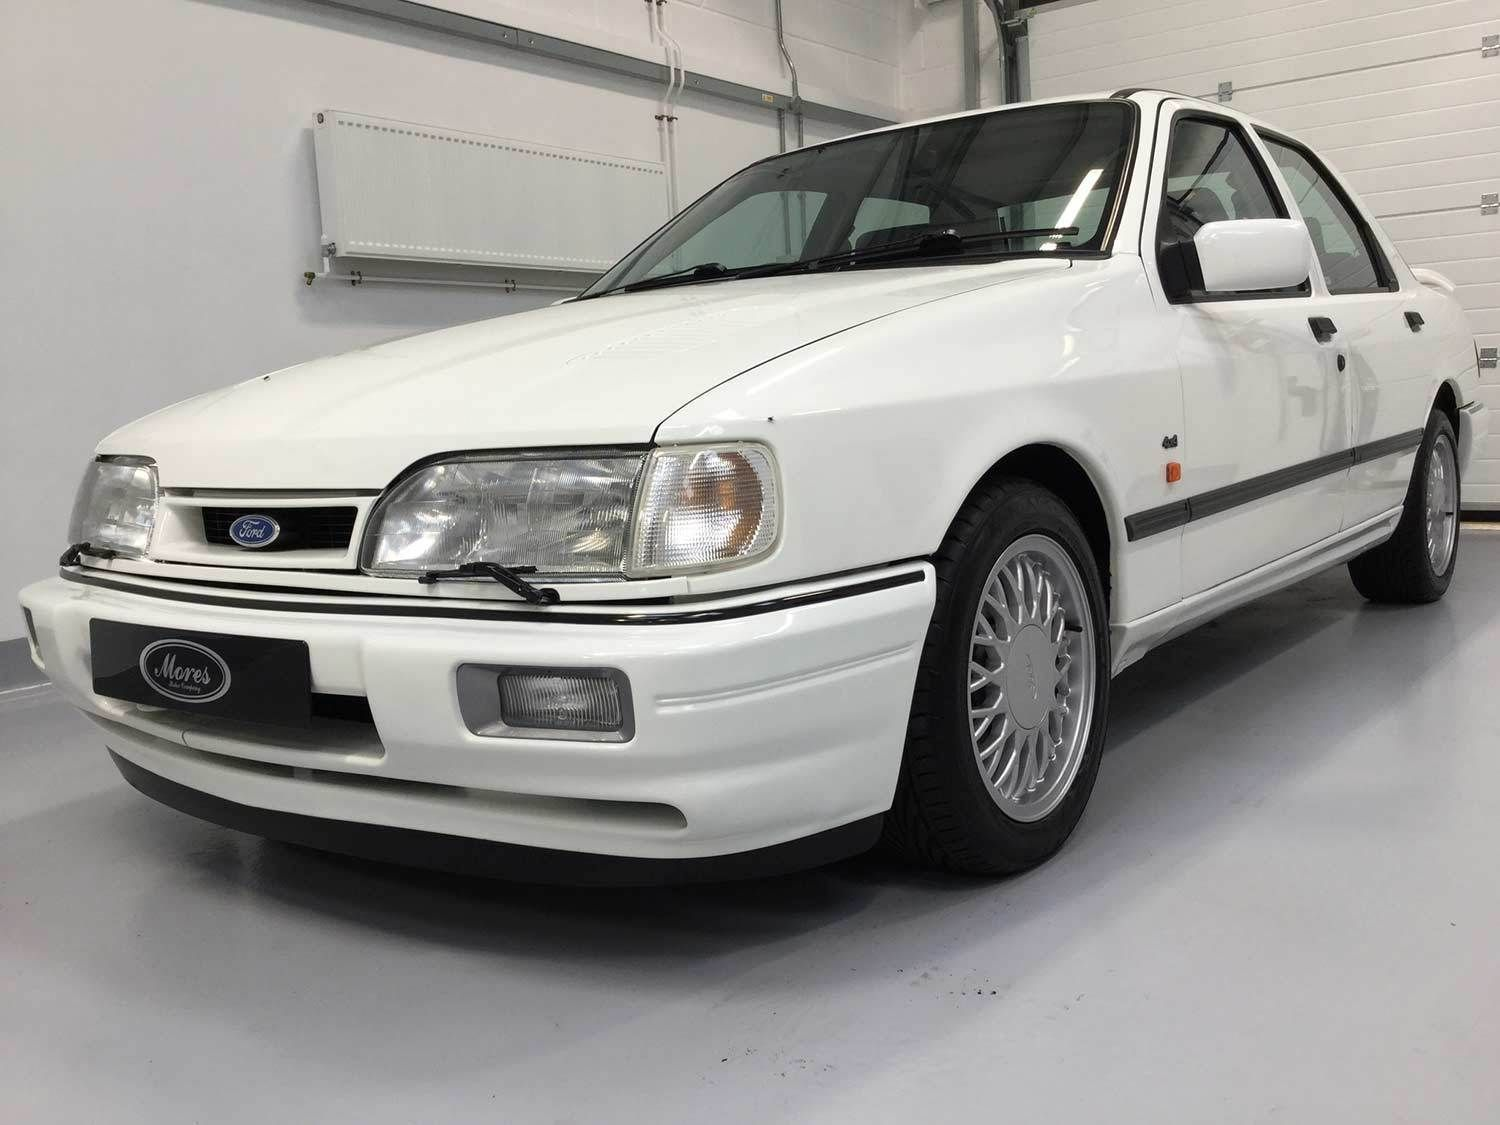 Check out this classic turbo. stunning ford sierra saphire 4x4 ...